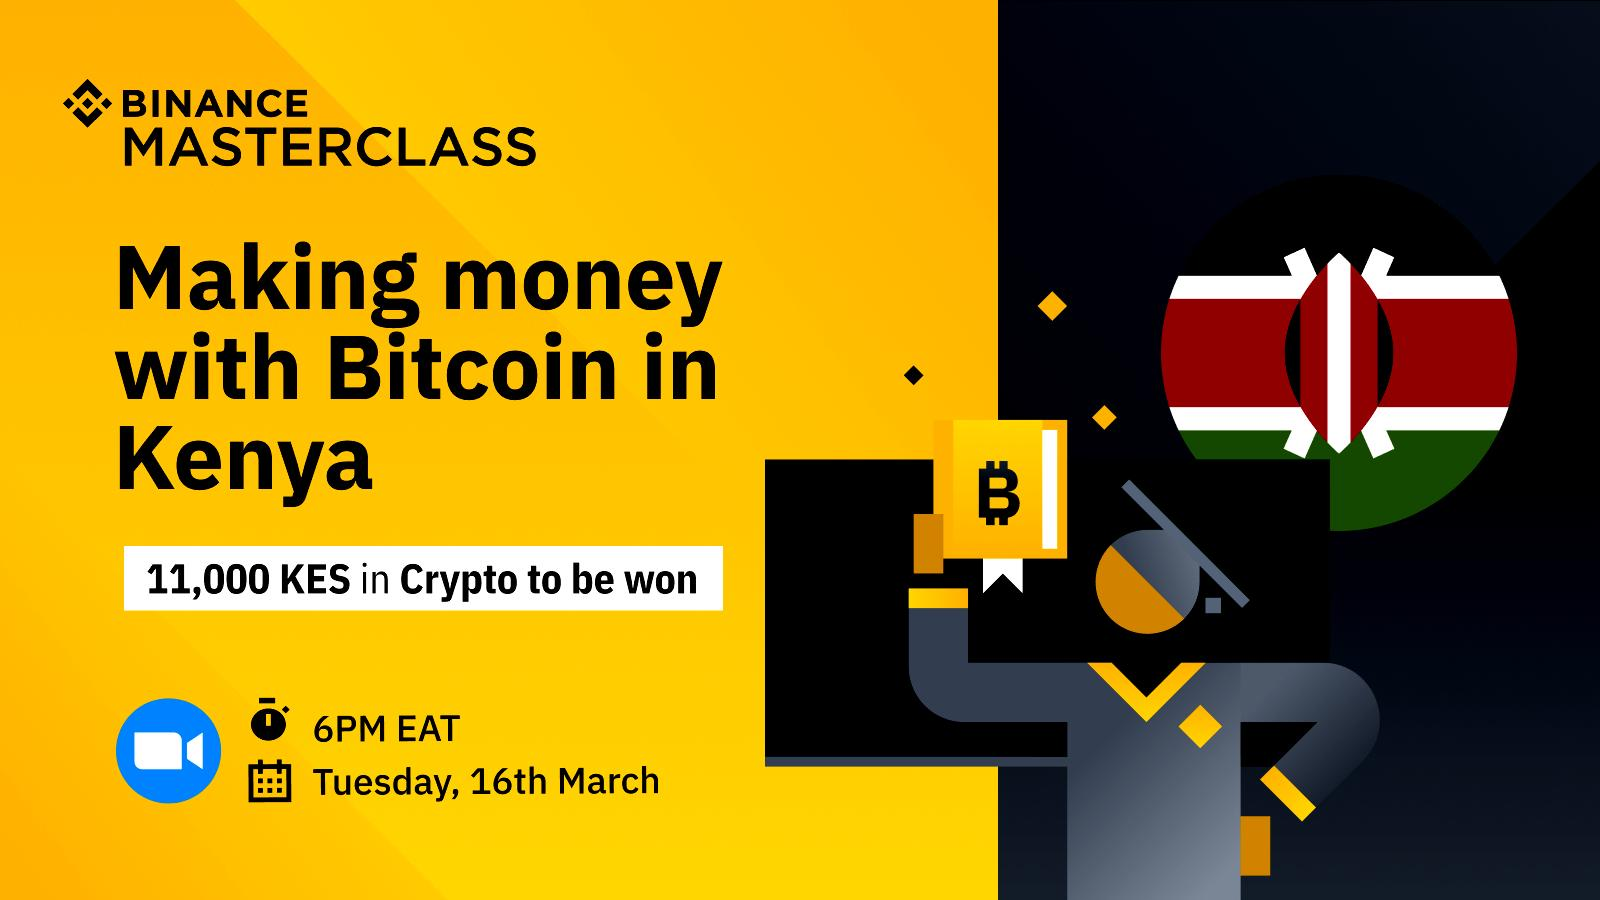 [MASTERCLASS: MARCH 16, 2021] Learn How to Make Money with Bitcoin in Kenya on Binance P2P